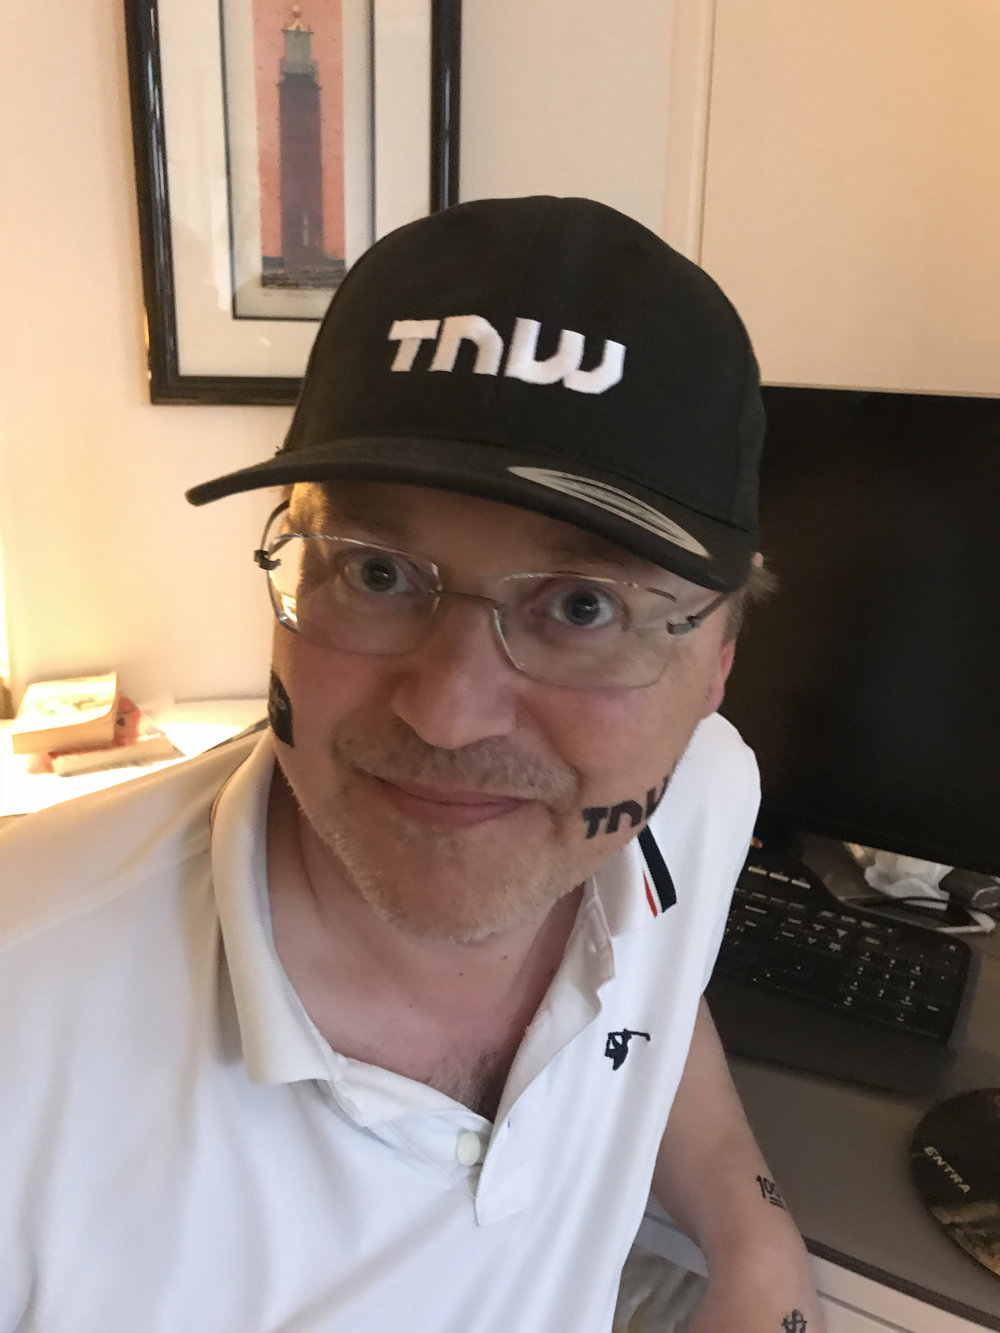 TNW CEO Boris gave Christopher a matching TNW cap